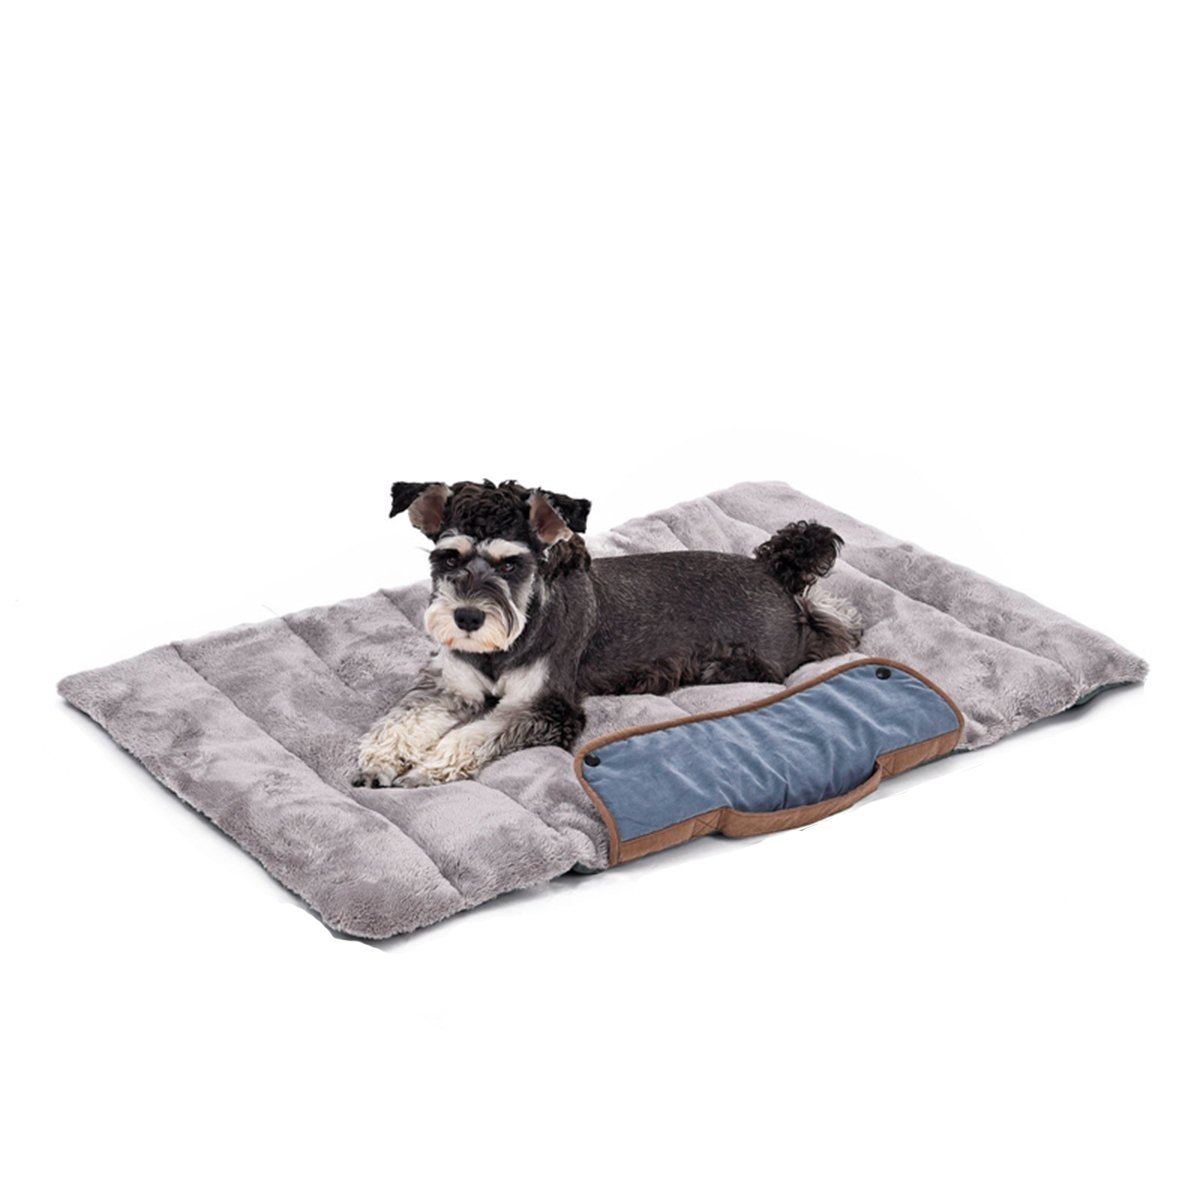 "Pawz Road Dog Mat Pet Cat Collapsible Bed Ultra Soft&Plush Warm Cushion For Dog Puppy Cat Indoor Outdoor Lawn Use,39.4""X25.6"" Inches by Pawz Road"